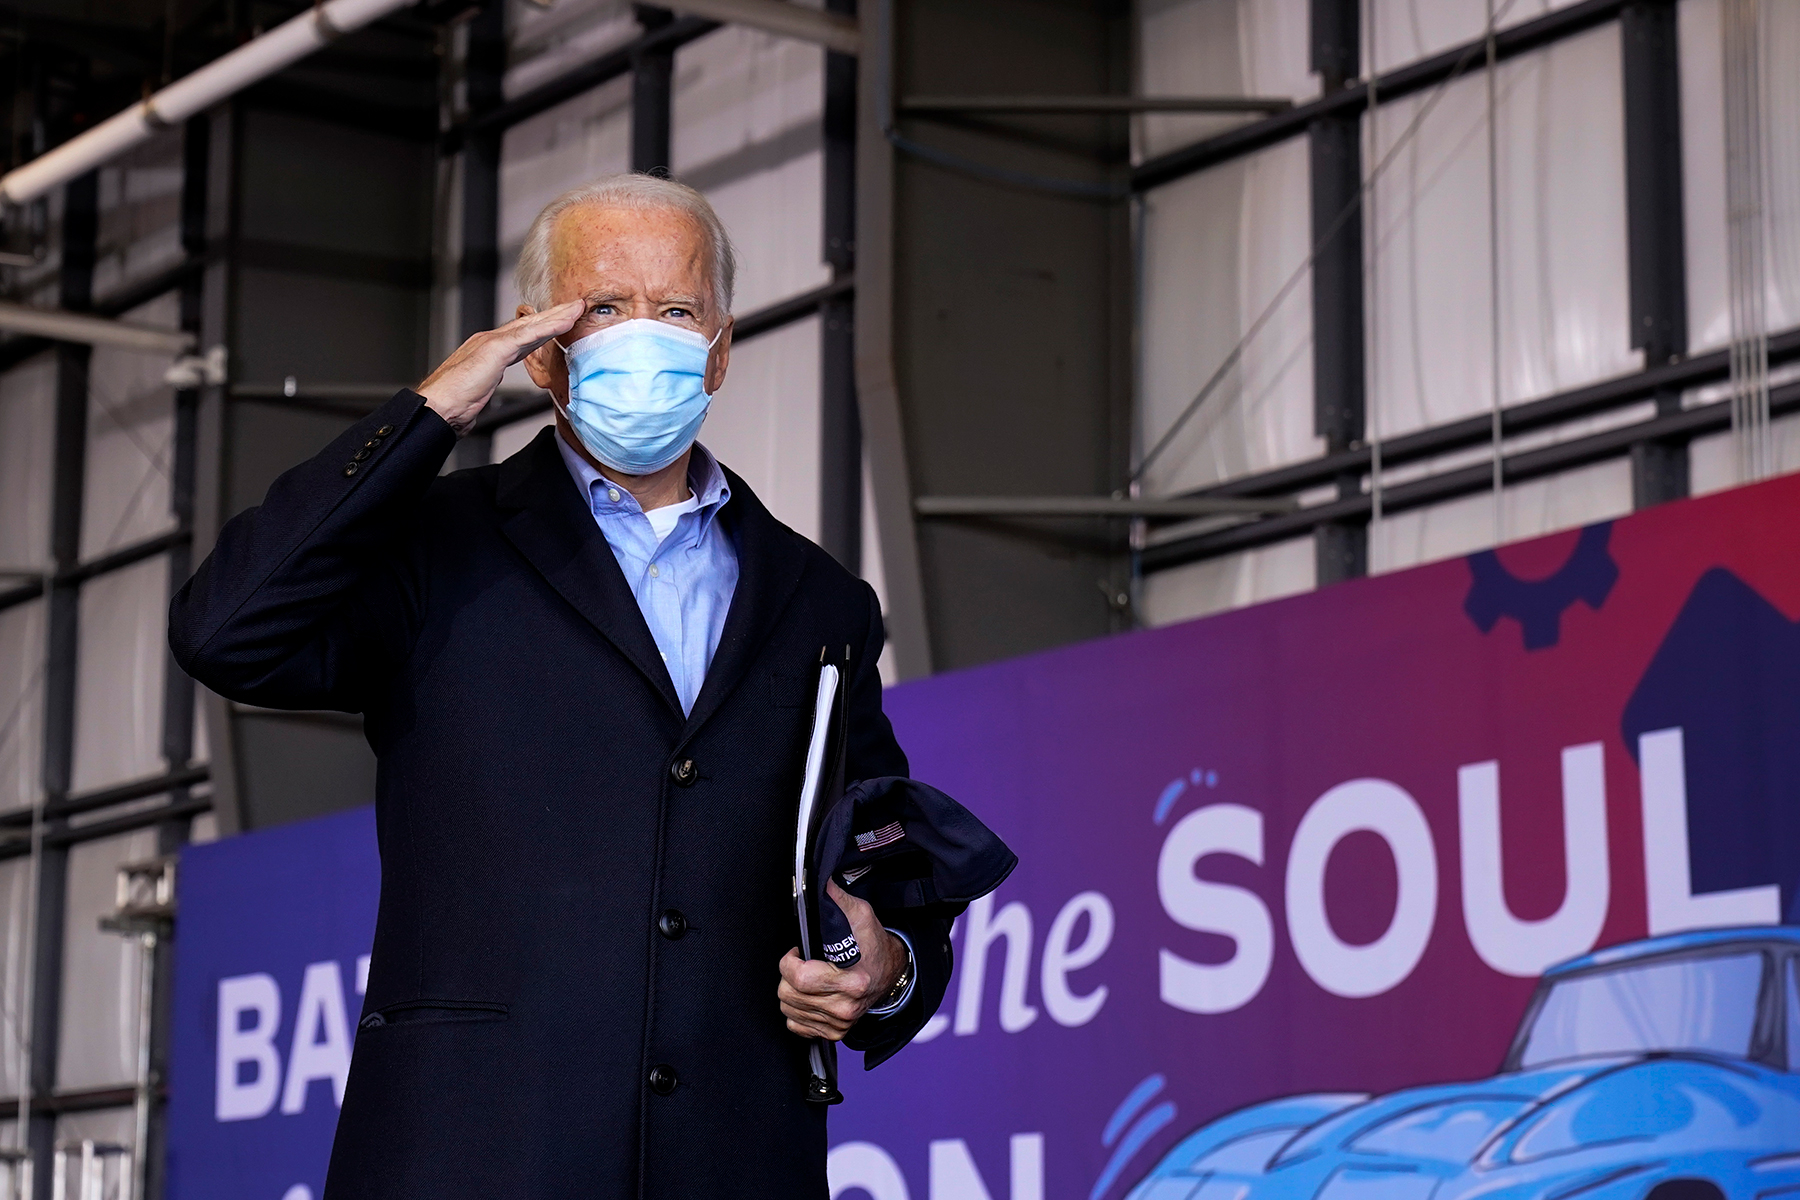 Democratic presidential candidate former Vice President Joe Biden salutes after speaking at a rally at Cleveland Burke Lakefront Airport, Monday, Nov. 2, 2020, in Cleveland. (AP Photo/Andrew Harnik)